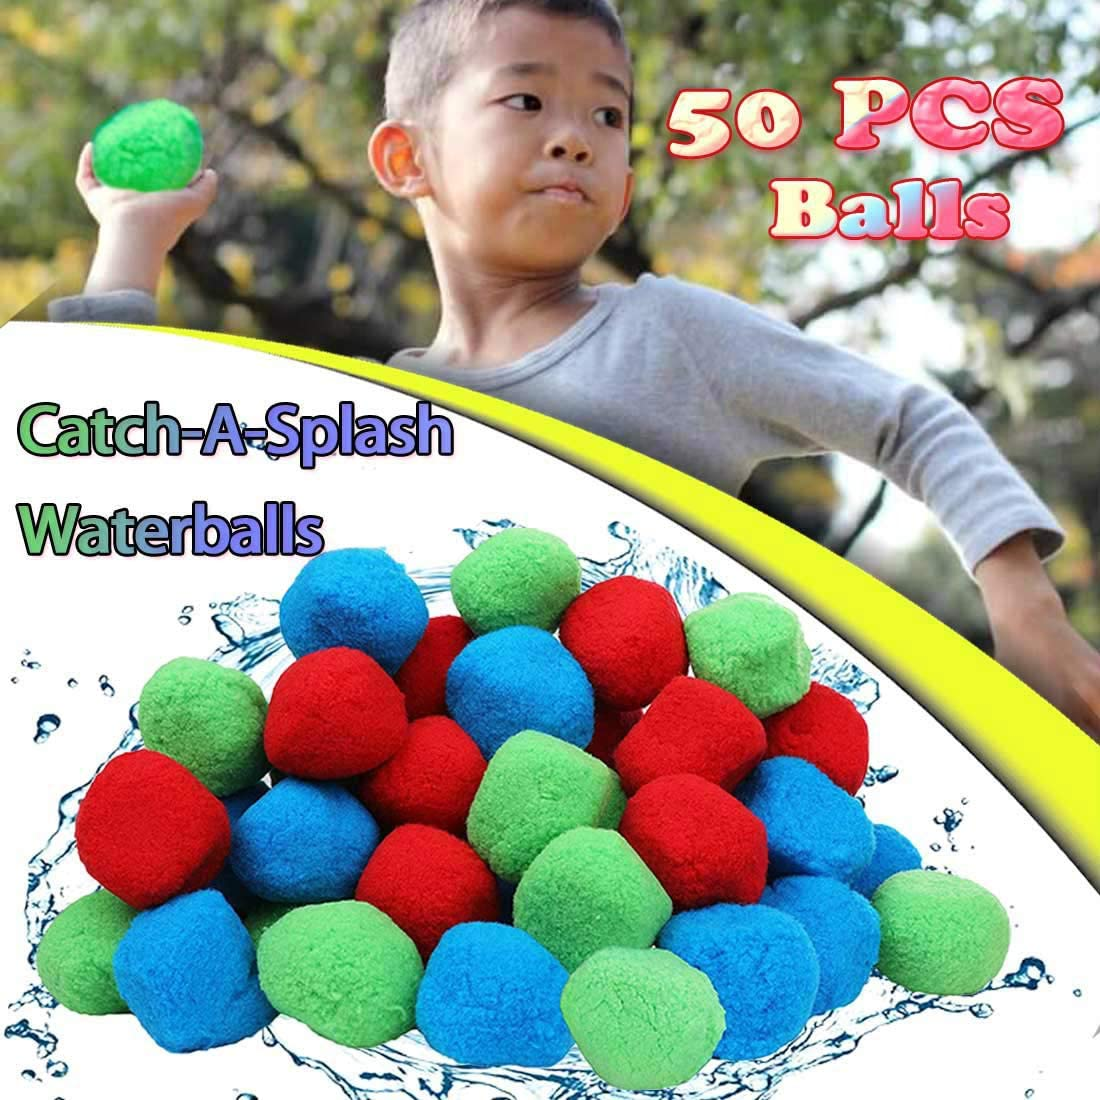 MLOLM 50 Highly Absorbent Cotton Splash Balls,Reusable Outdoor & Pool Water Activities for K-i-ds